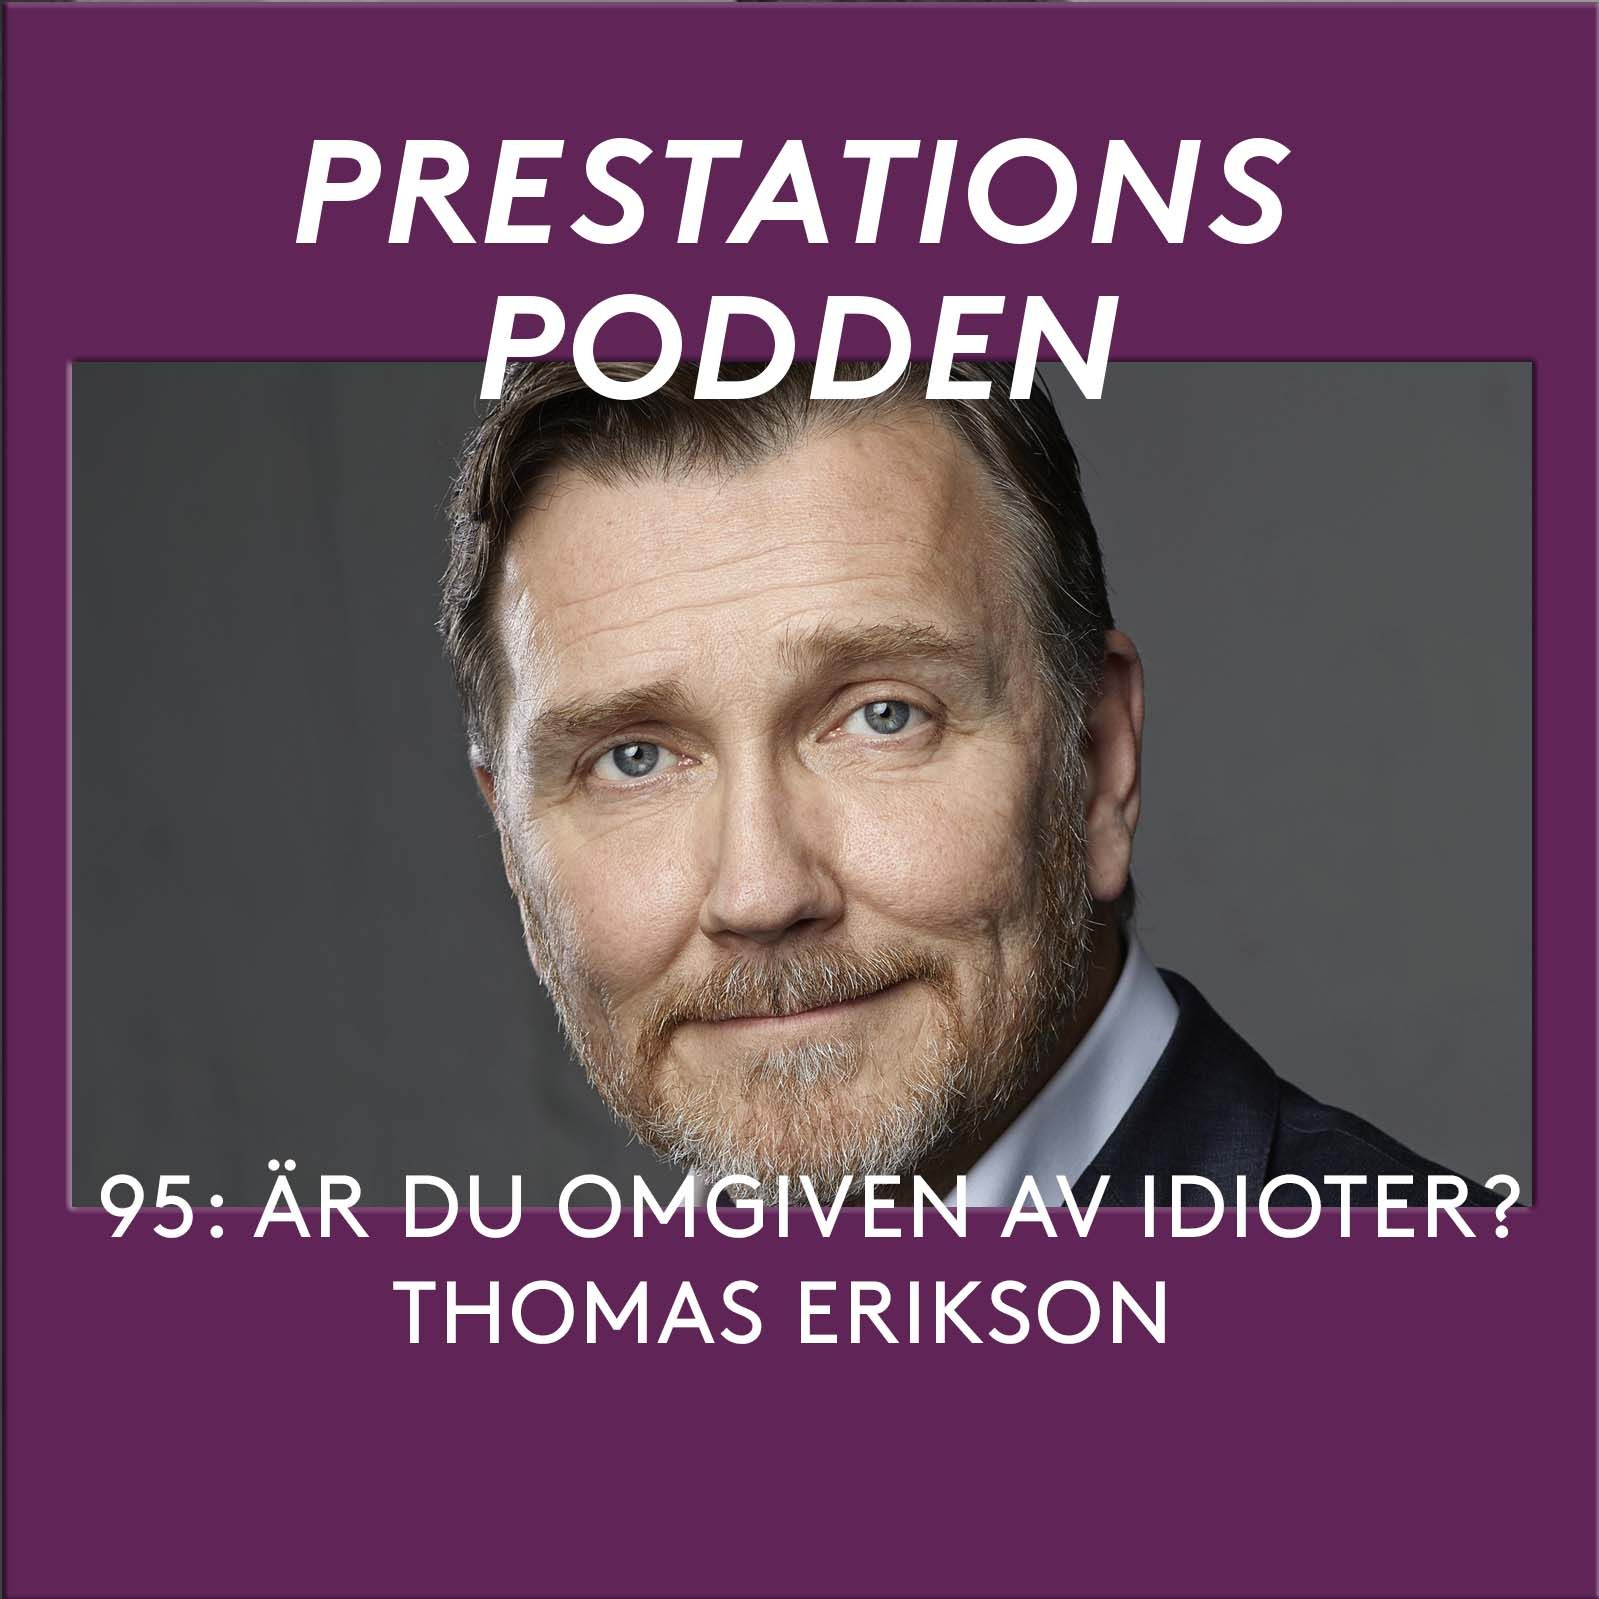 Prestationspodden